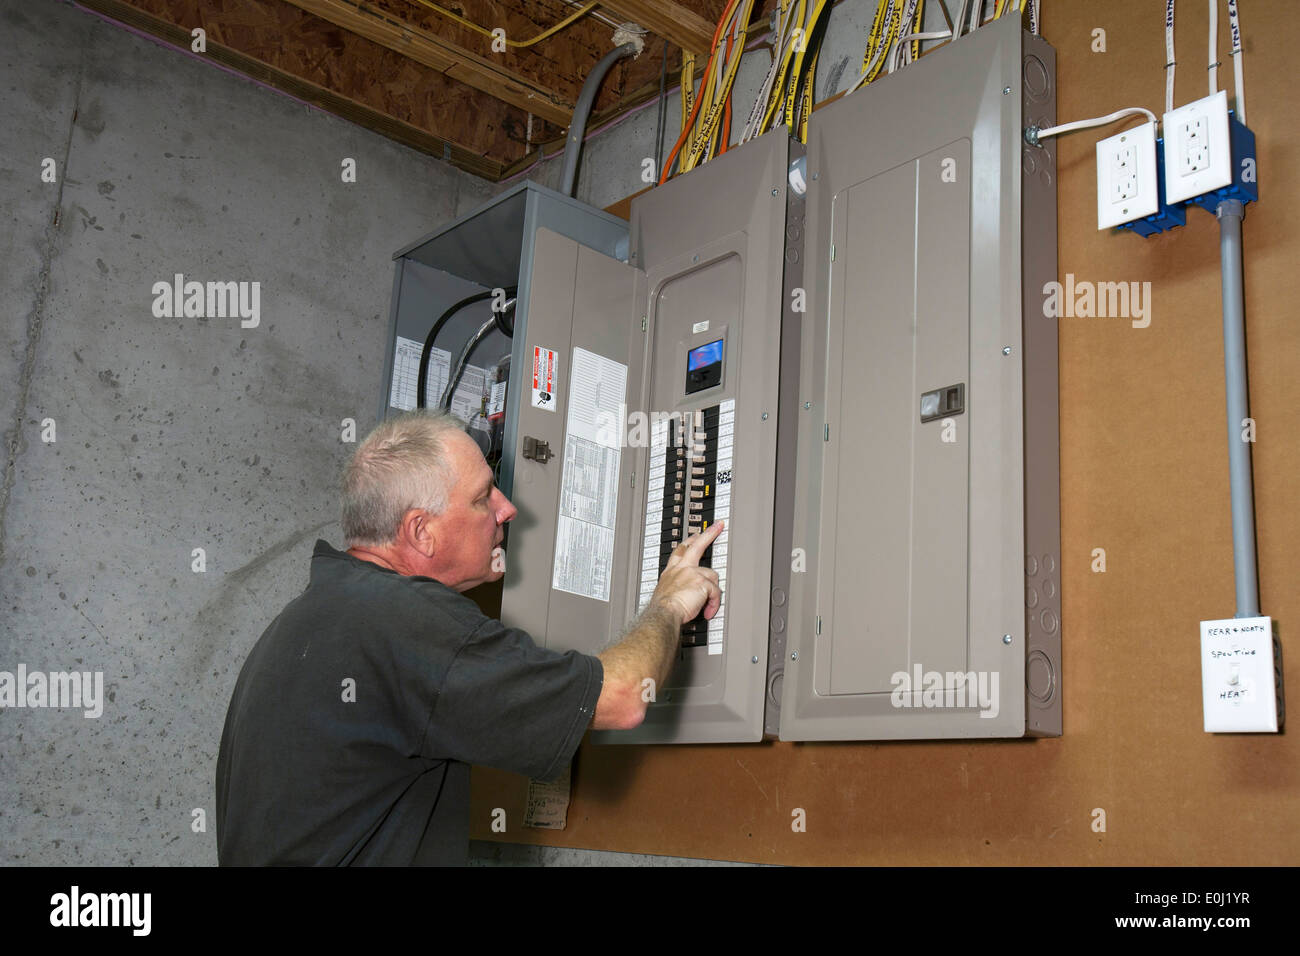 Fuse Box Pics Of Basement Auto Electrical Wiring Diagram Electric Panel Man Standing Next To In A Stock Photo 69238171 Rh Alamy Com Vehicle